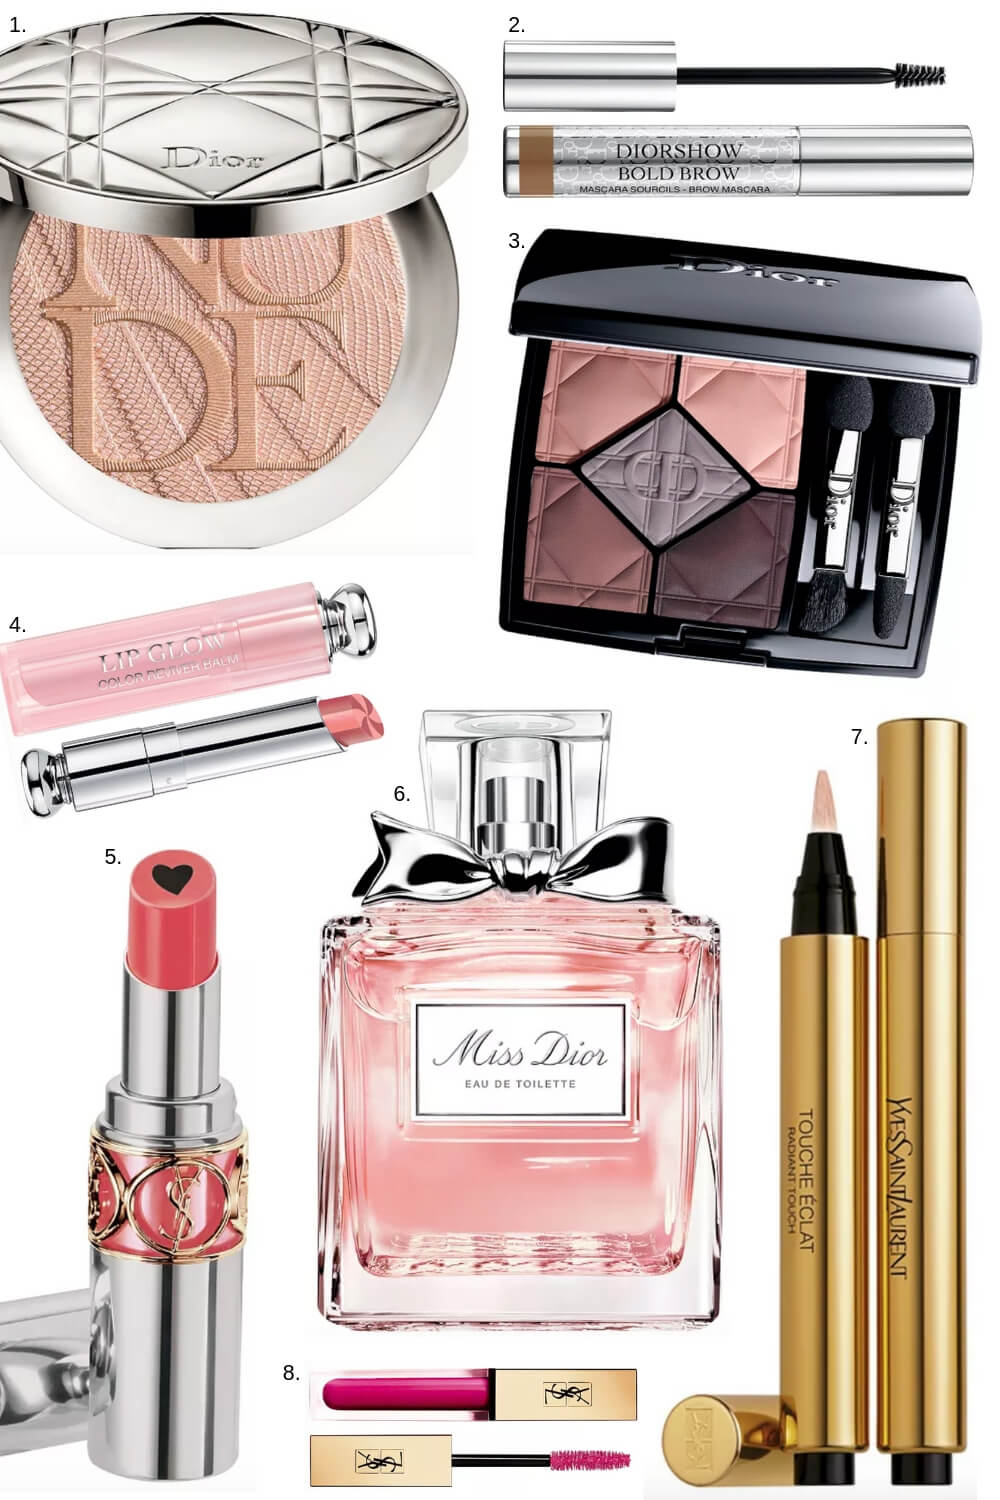 Dior and YSL Makeup for Spring